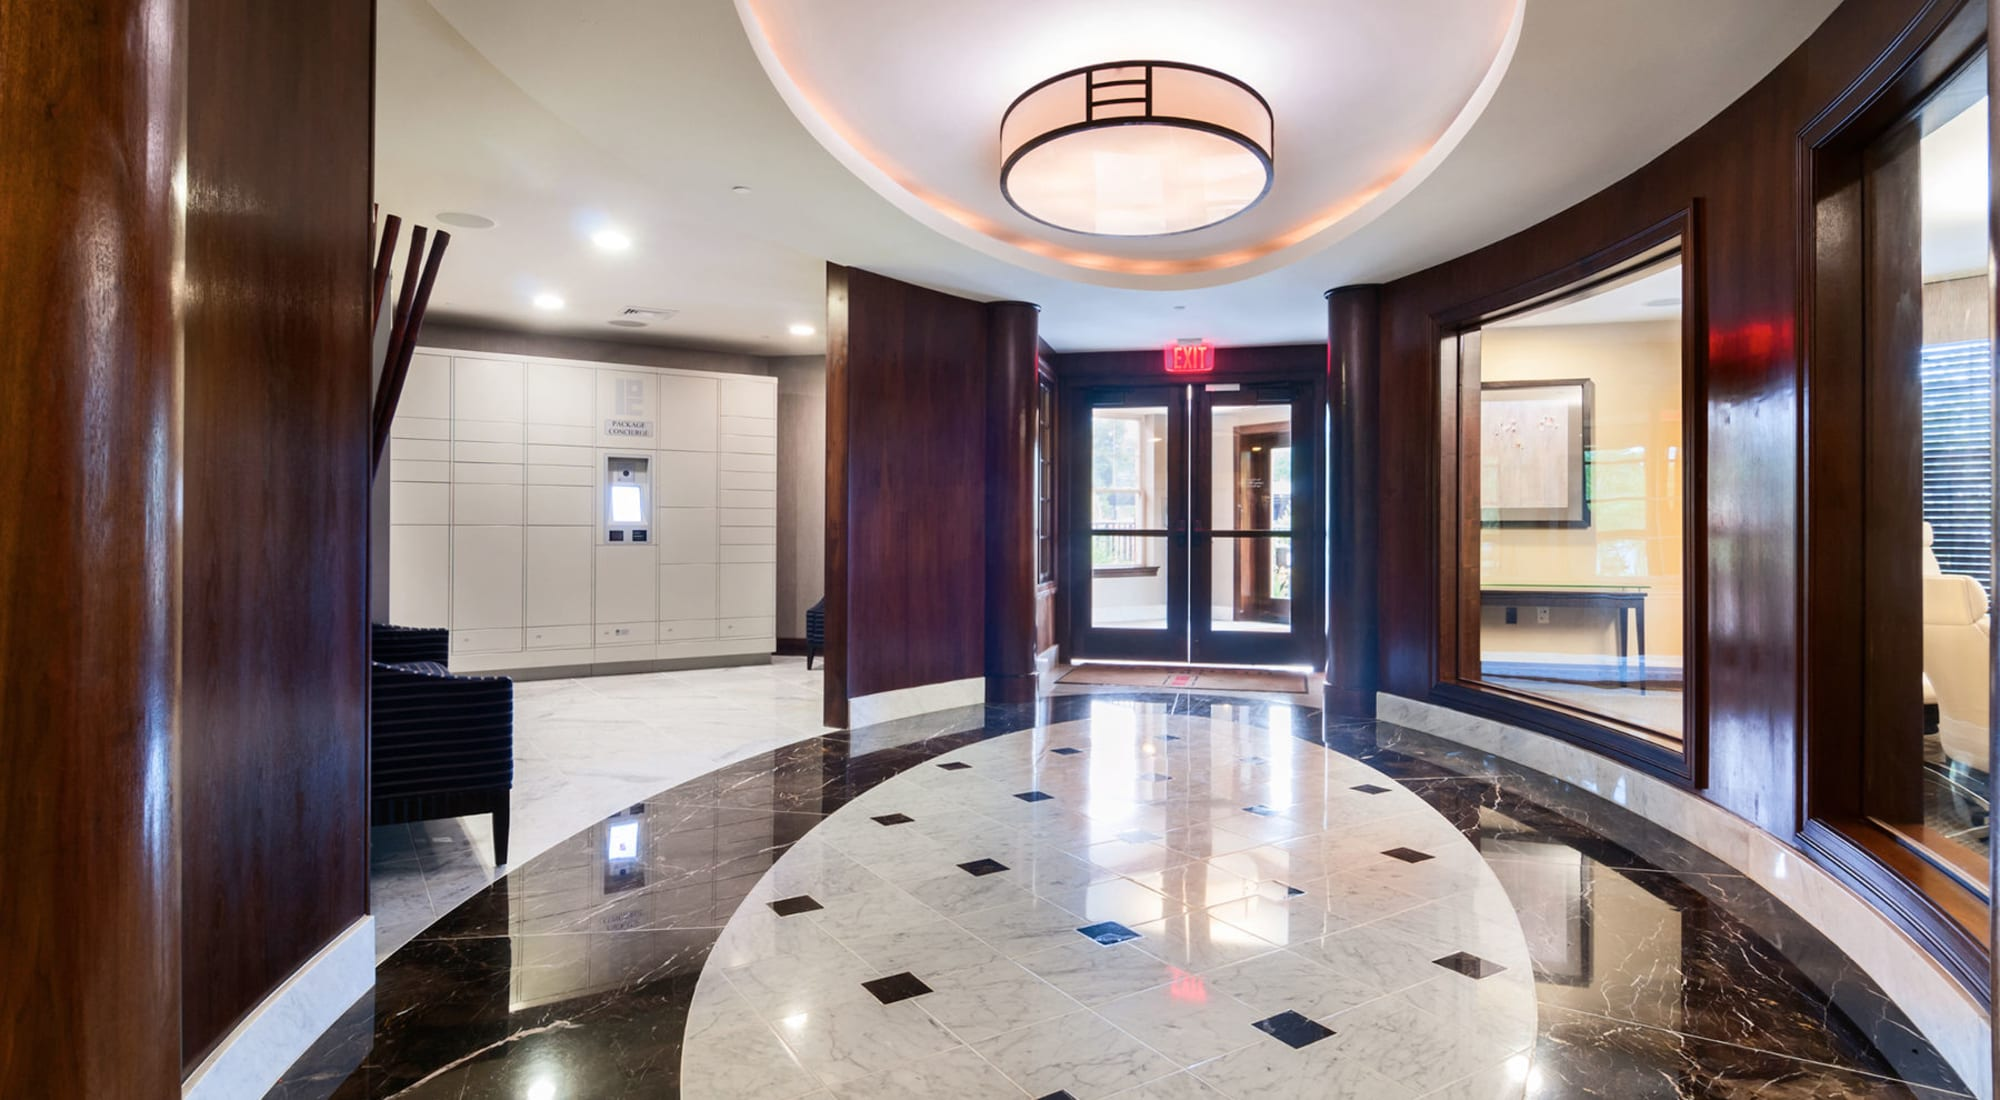 Apply to live at Sofi at Morristown Station in Morristown, New Jersey